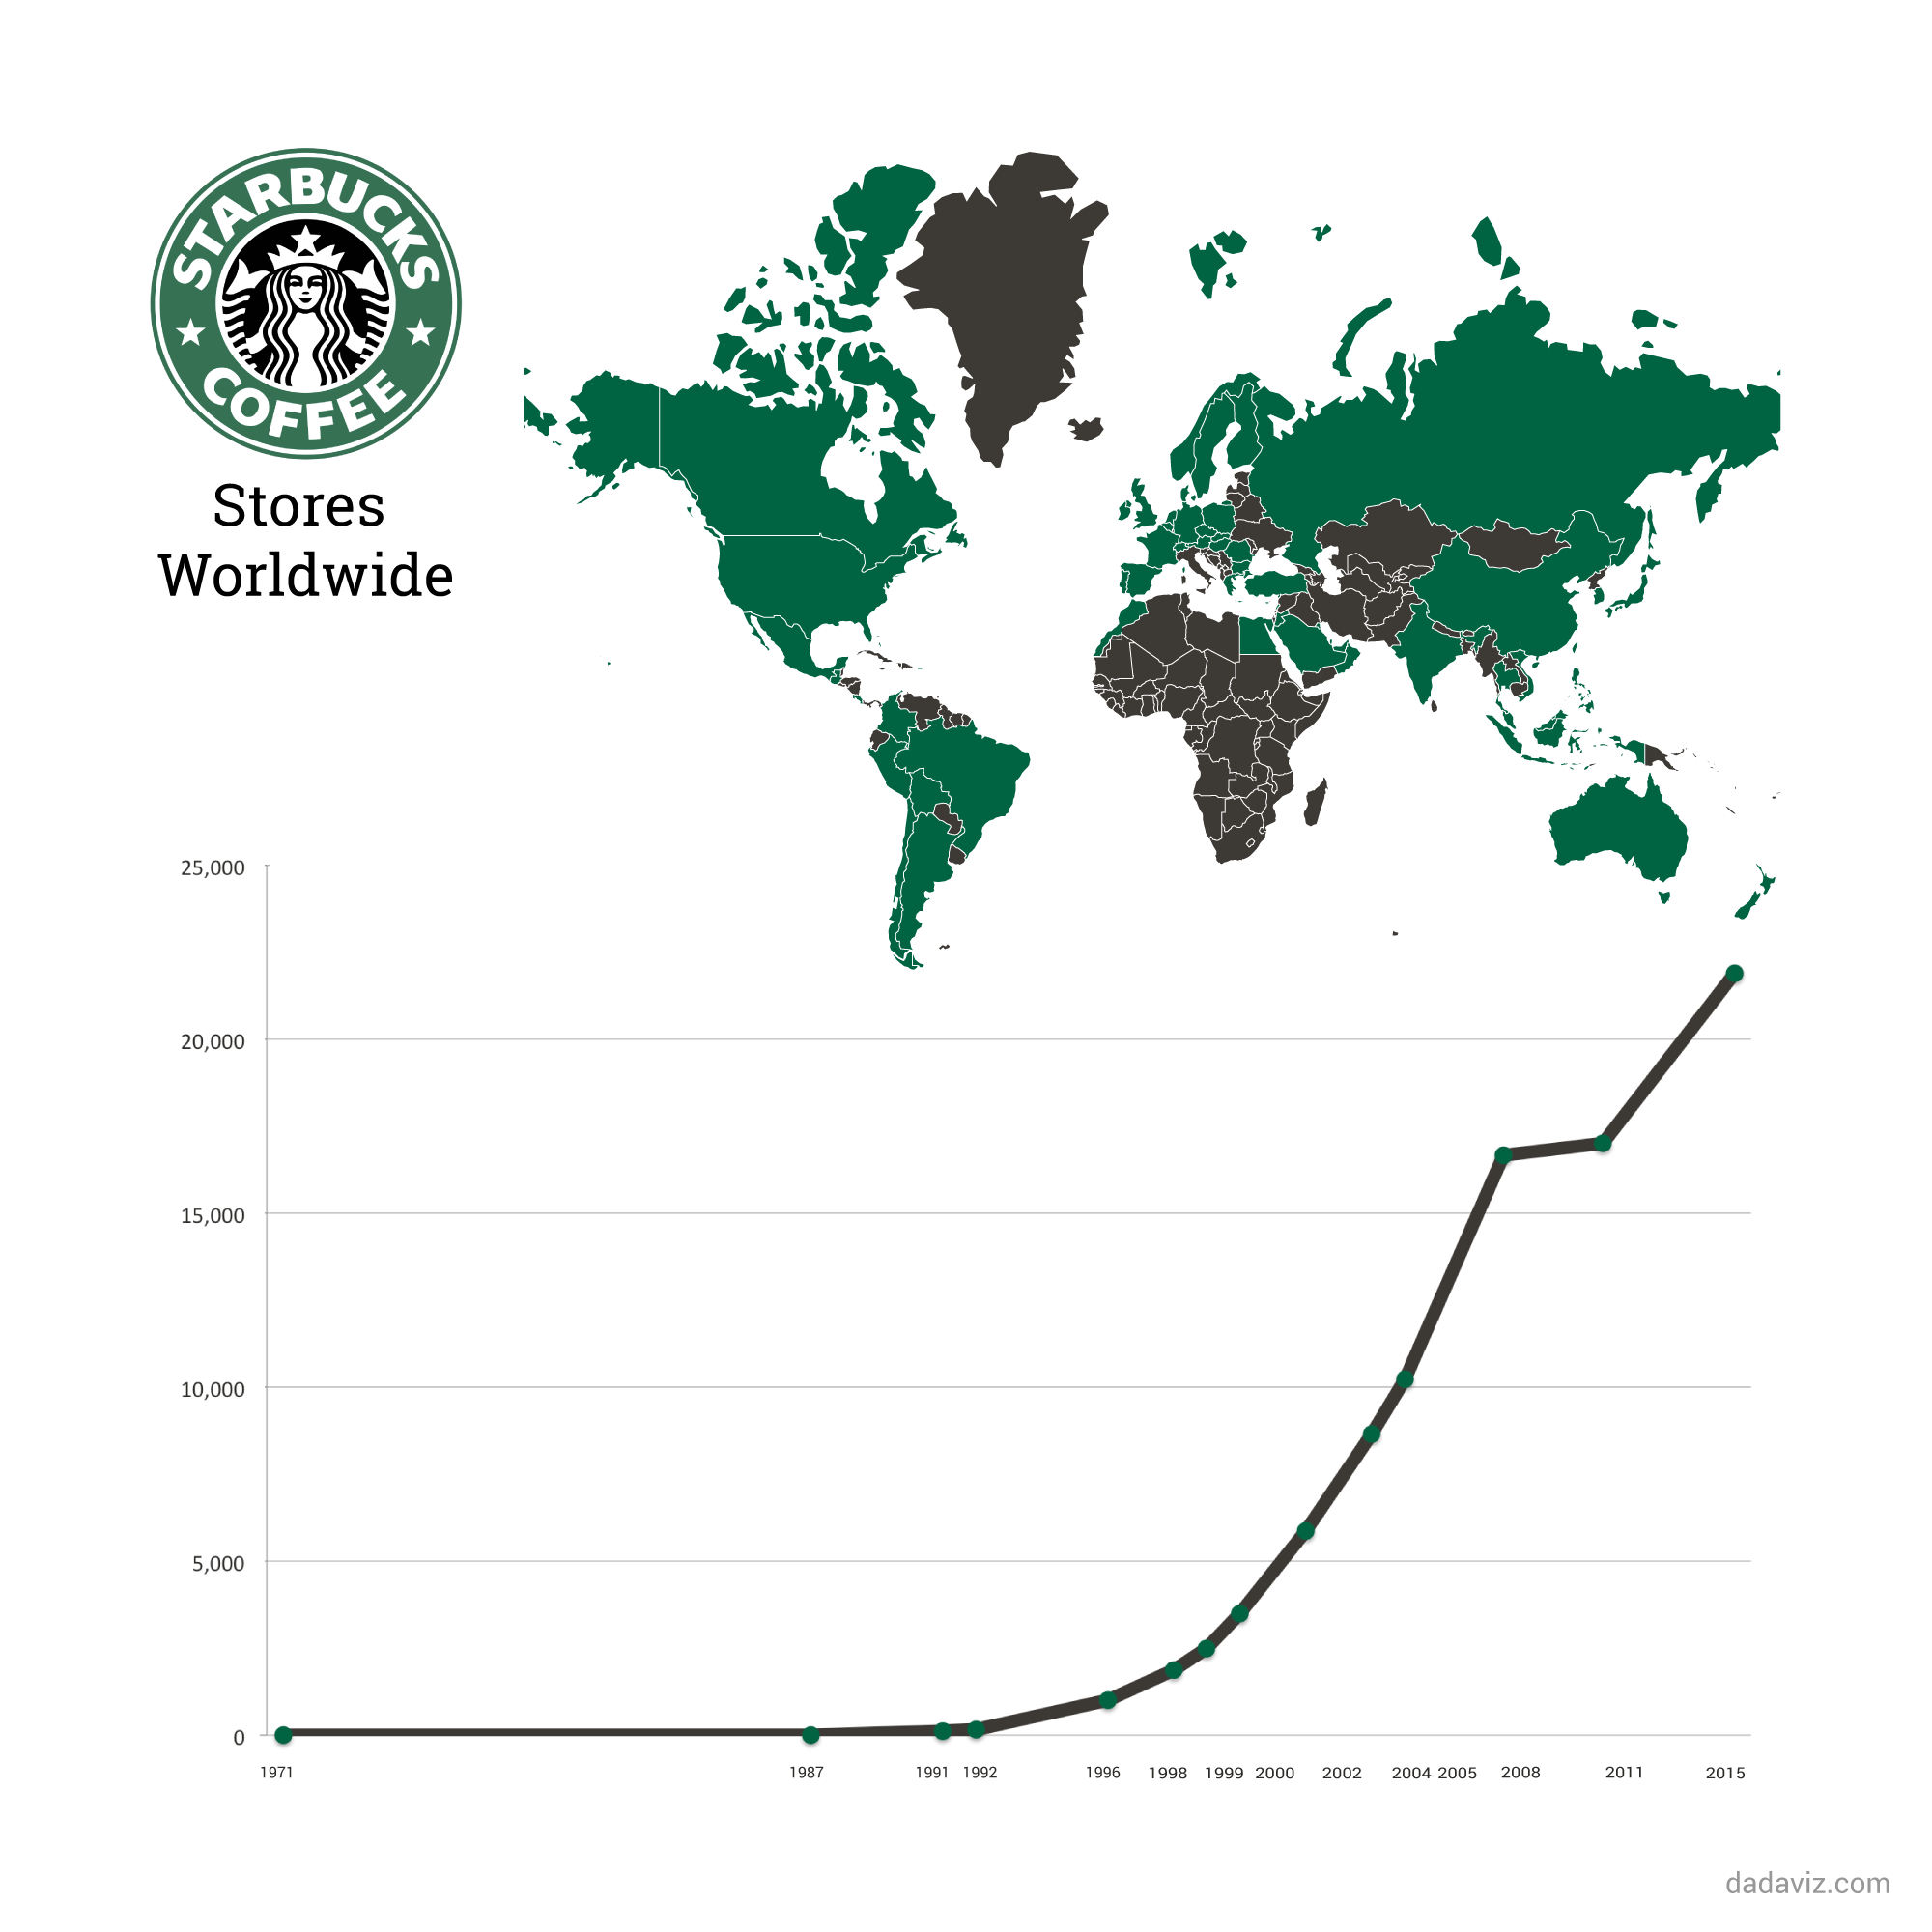 Starbucks on track for global domination a world map of for Starbucks in the world